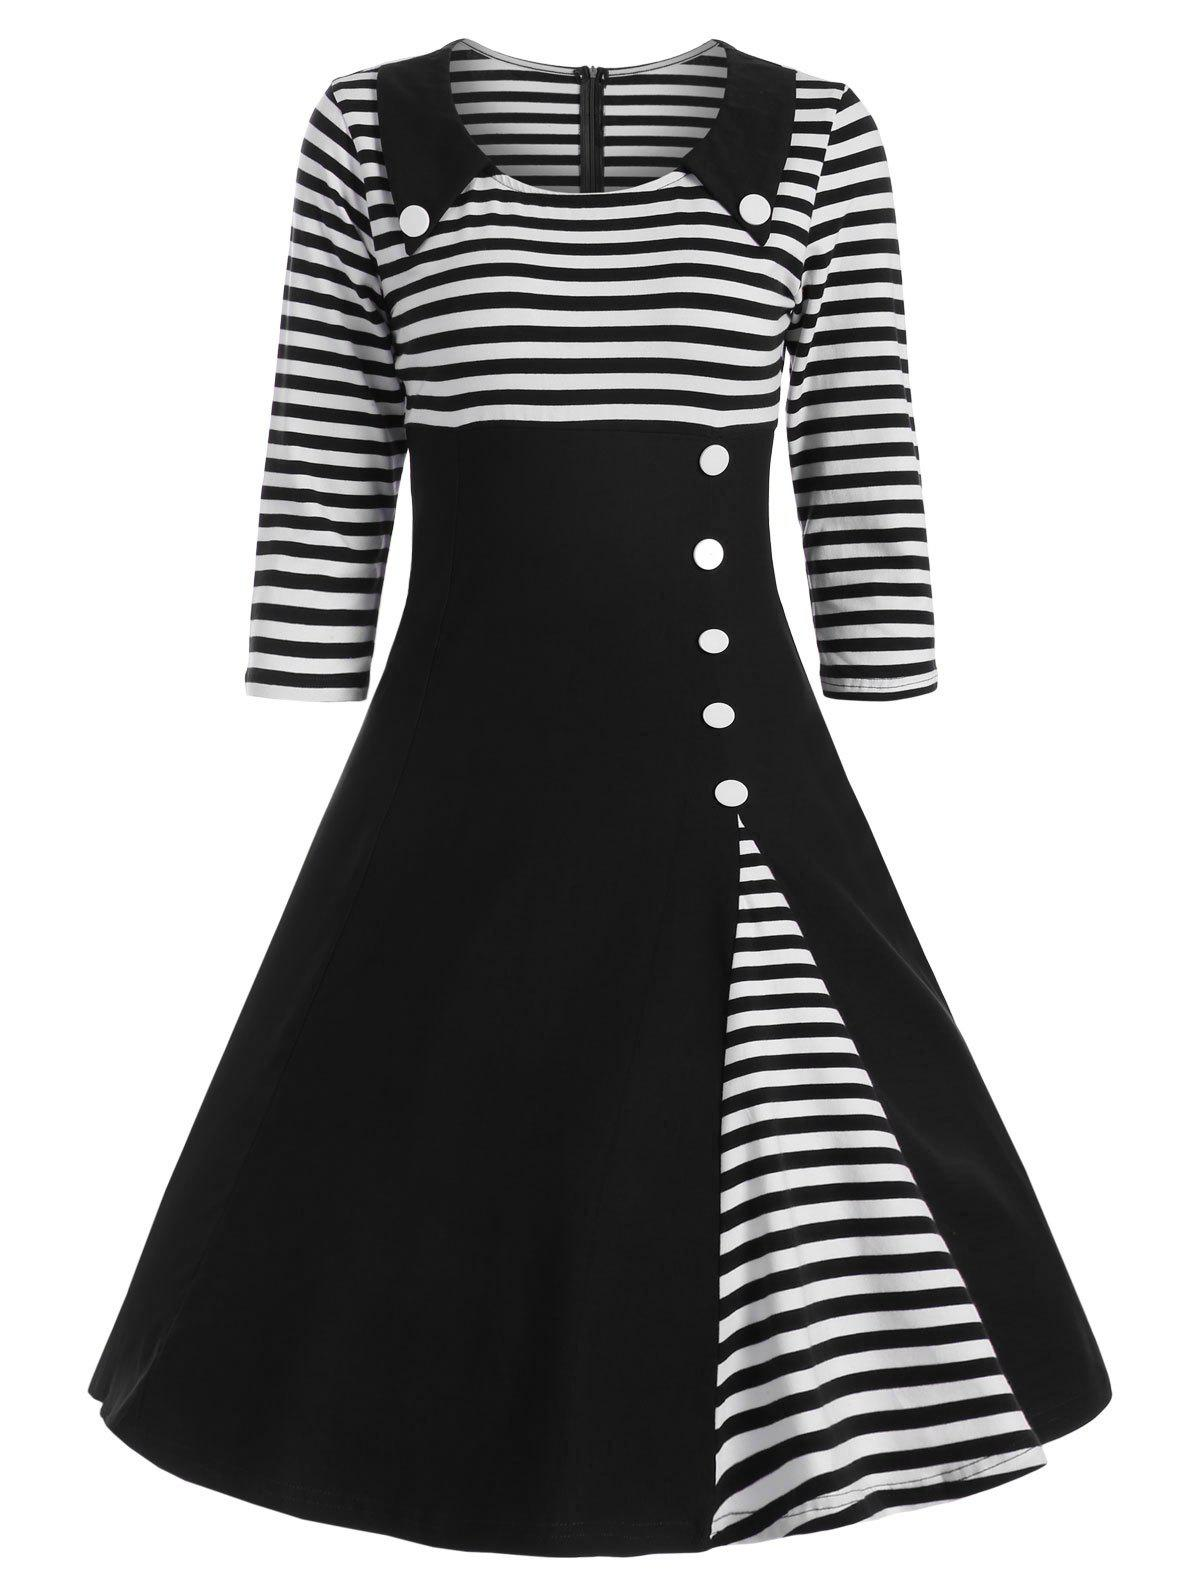 Button Embellished Striped A Line Vintage DressWOMEN<br><br>Size: S; Color: BLACK; Style: Vintage; Material: Polyester,Spandex; Silhouette: A-Line; Dresses Length: Knee-Length; Neckline: Round Collar; Sleeve Length: 3/4 Length Sleeves; Embellishment: Button; Pattern Type: Striped; With Belt: No; Season: Fall,Spring; Weight: 0.4200kg; Package Contents: 1 x Dress;